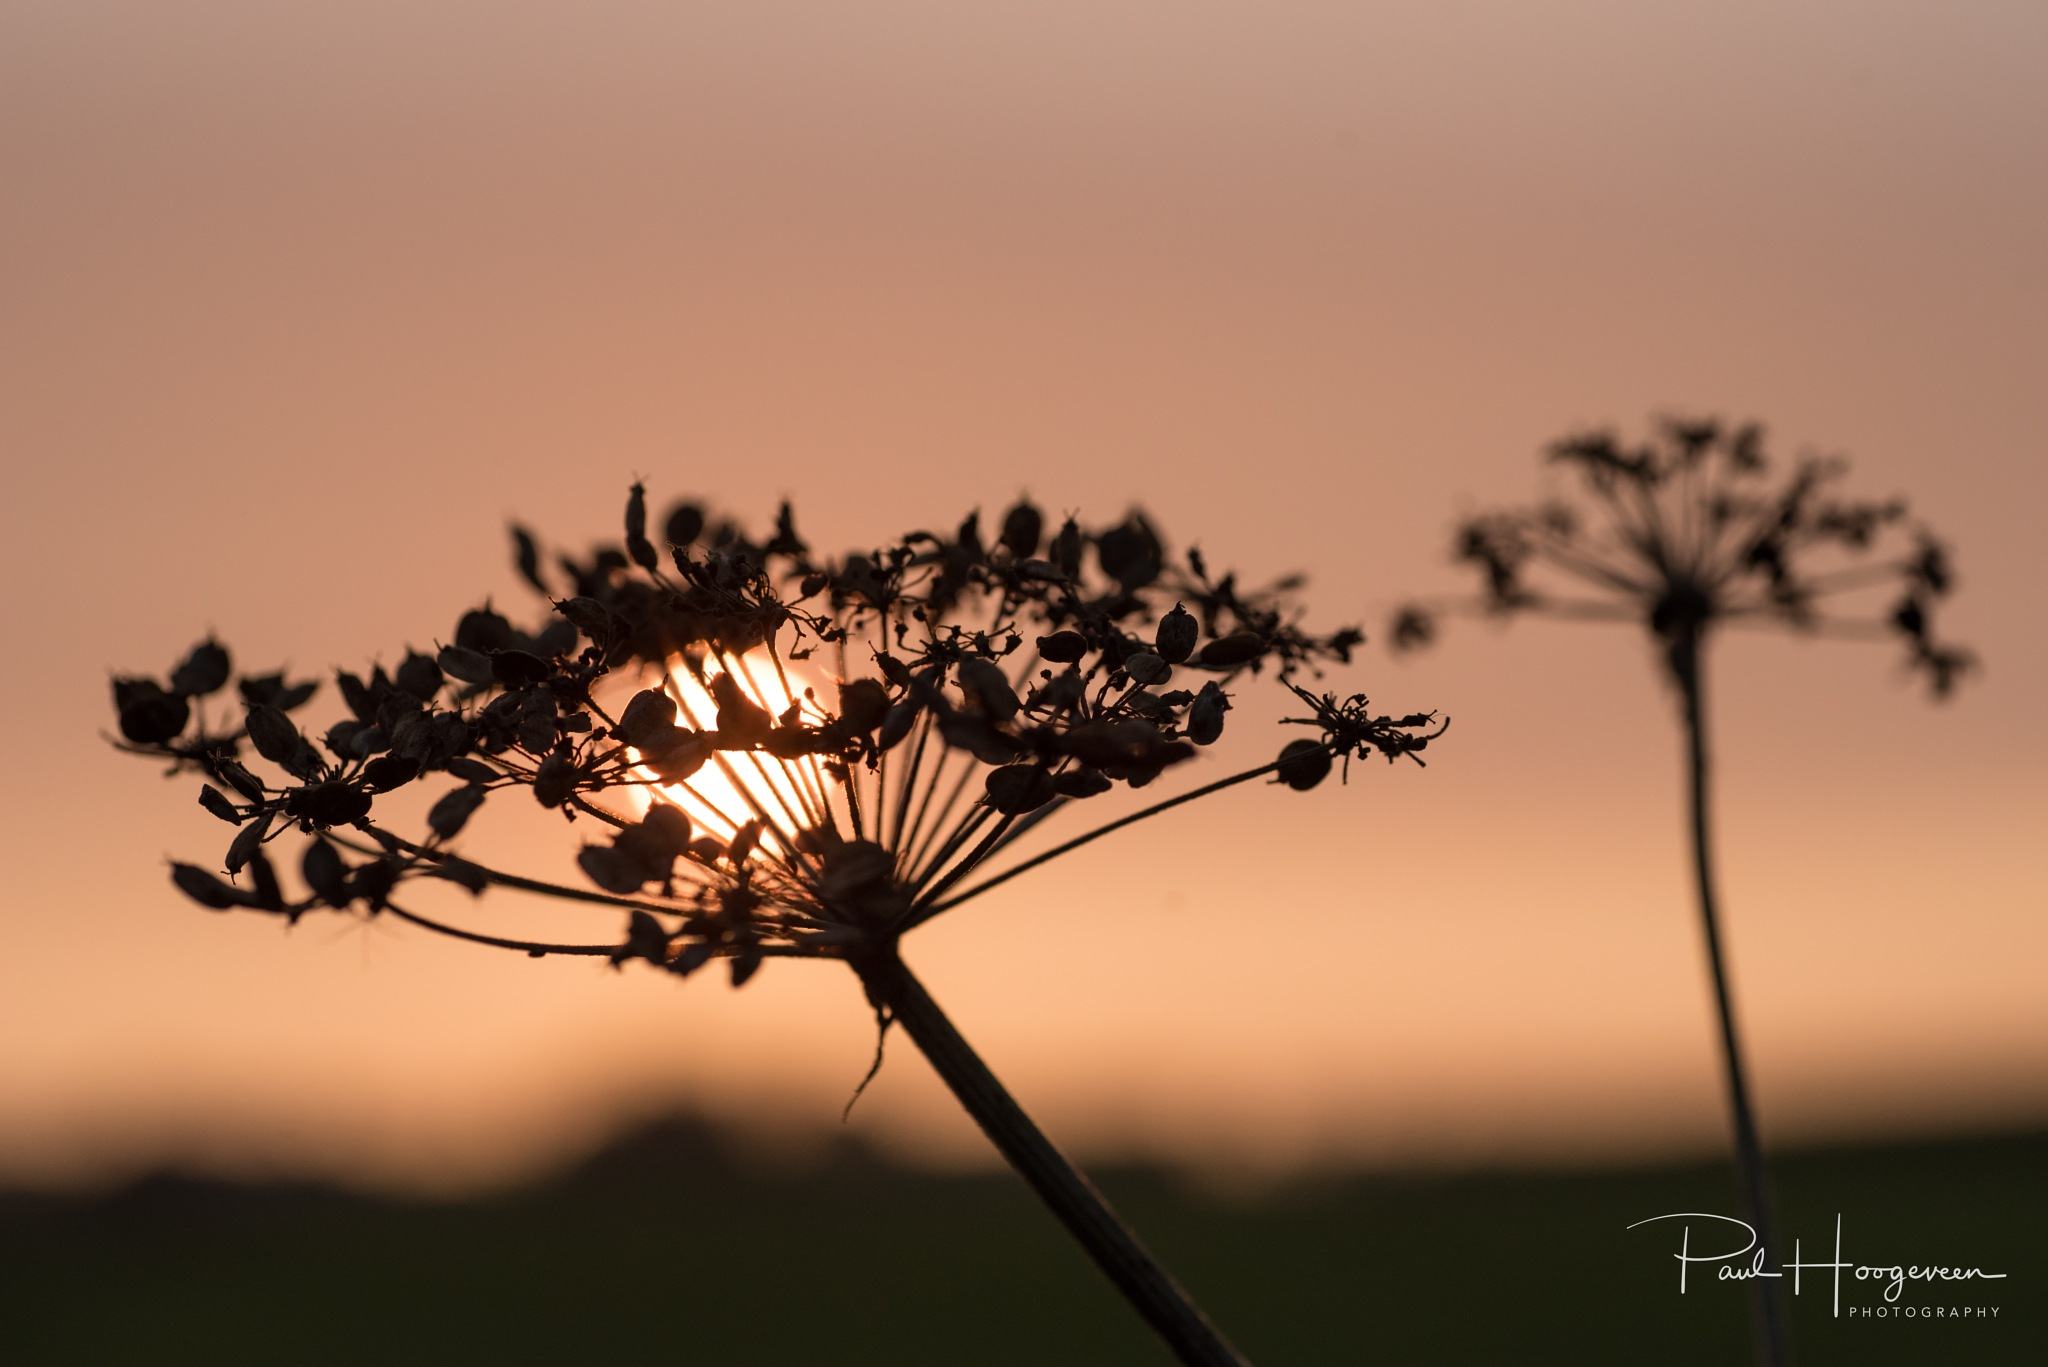 Flower silhouette at sunset by Paul Hoogeveen Photography